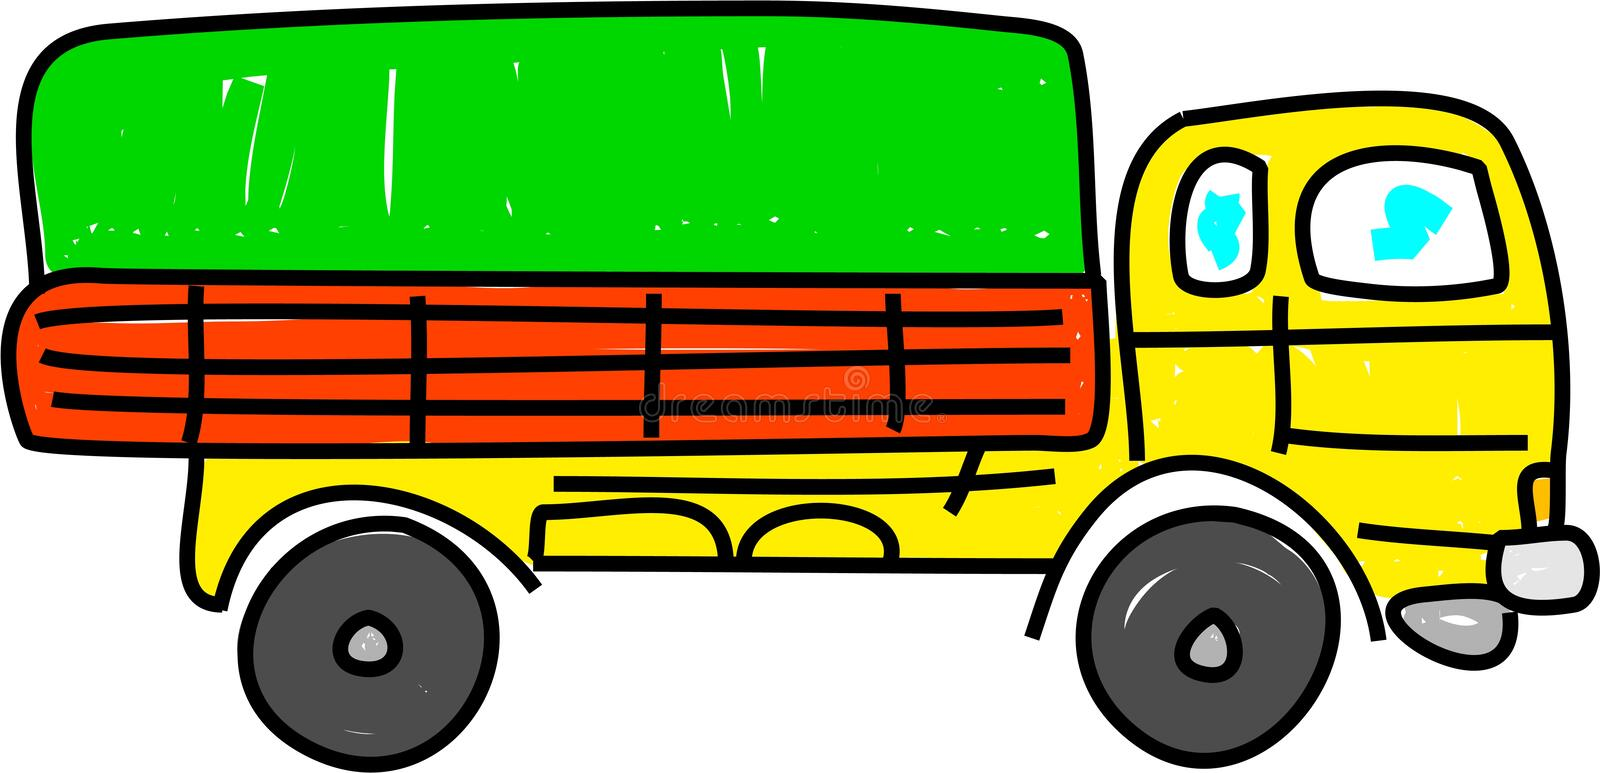 Download Lorry stock illustration. Image of clipart, vehicle, industry - 2592778